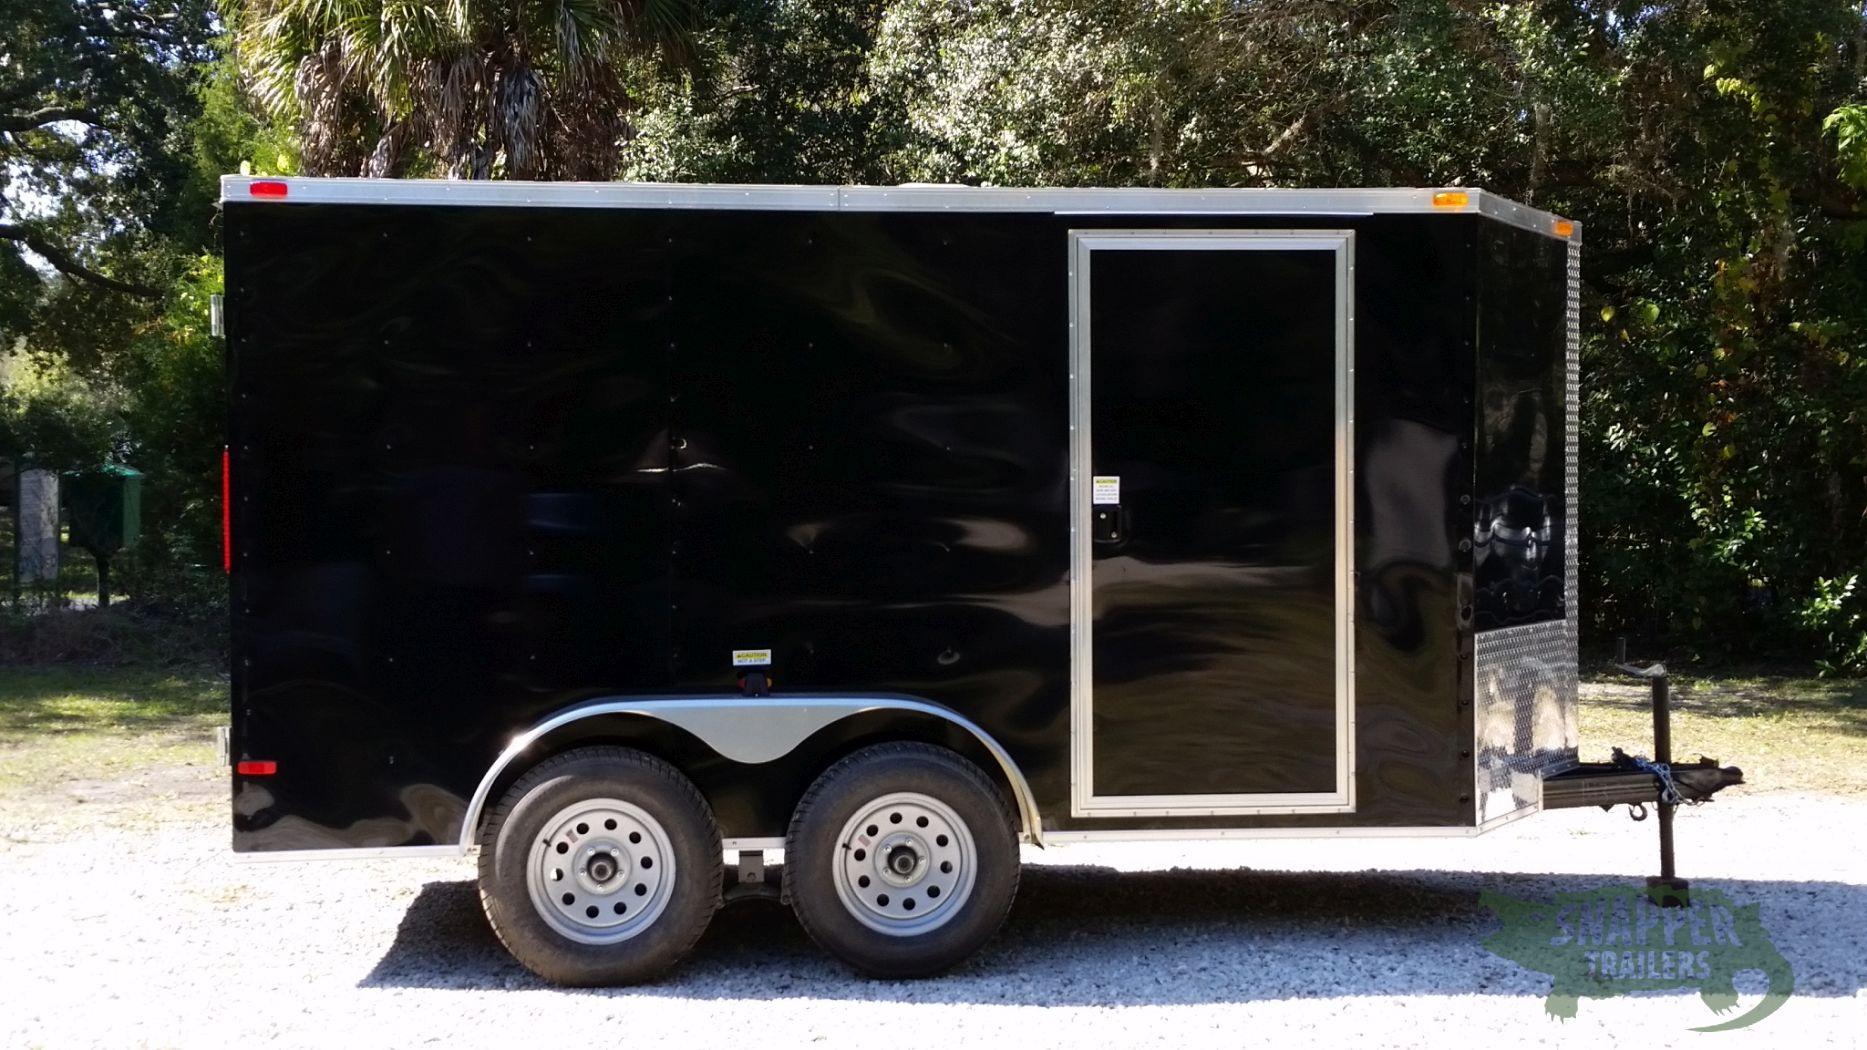 trailer home construction with Bs 6x12ta2l Blk Dd Rv Catalog on Cat motor graders also Diy Micro C ing Trailer moreover The 10 Best Time Capsules Opened In 2015 likewise Storey Residential Building Design Top 2 moreover Bs 6x12ta2l Blk Dd Rv Catalog.